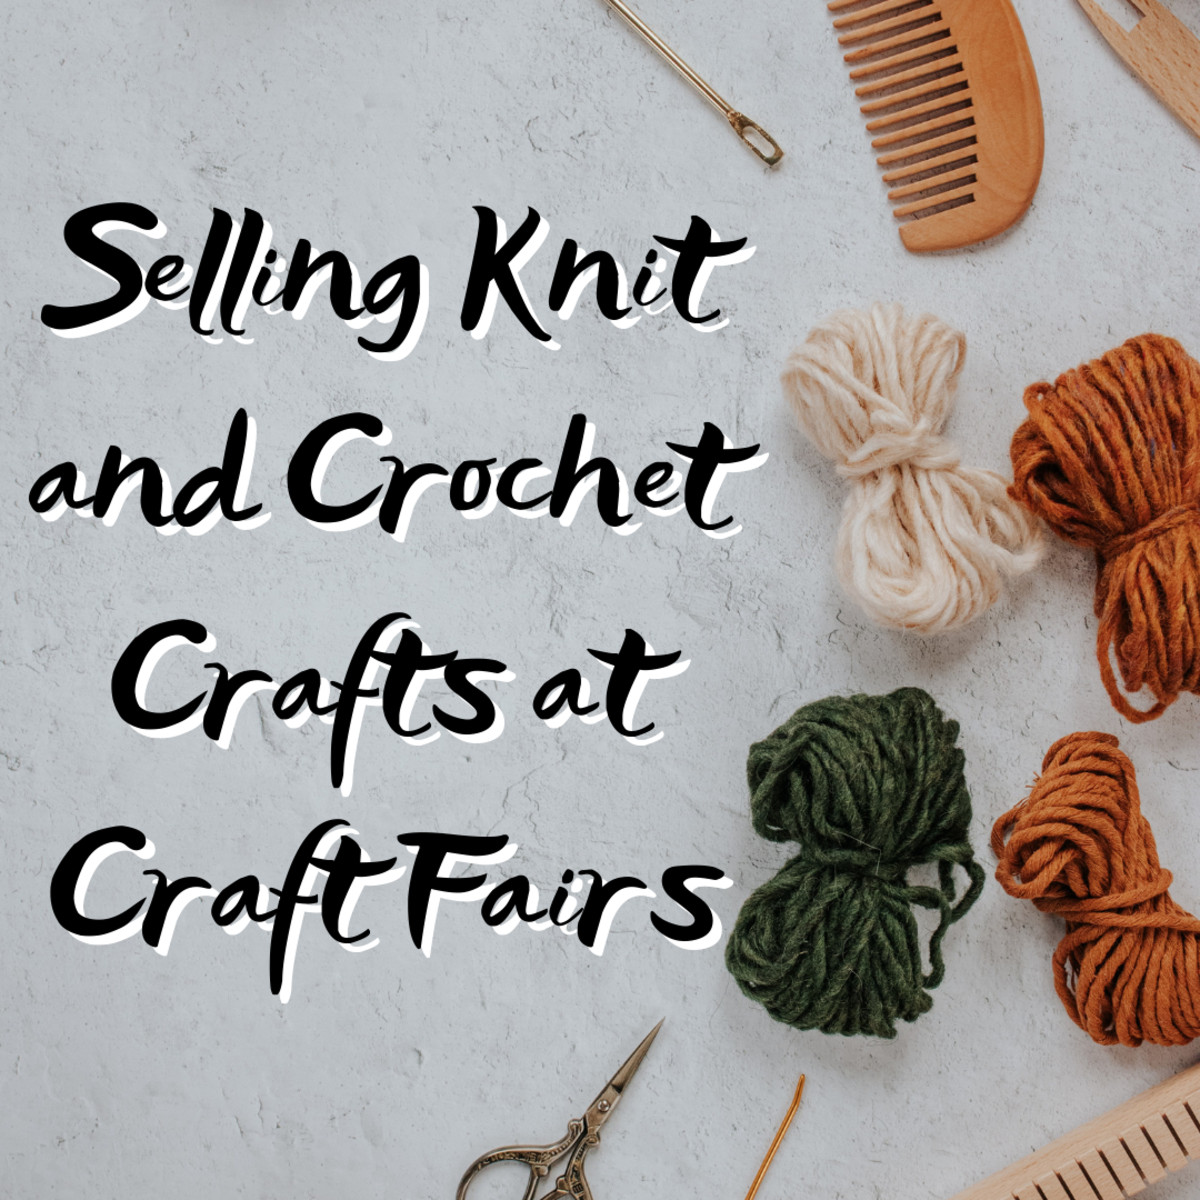 Learn tips and tricks for selling handmade knit and crochet crafts! Find out what some of the best selling crochet items at crafts shows are!